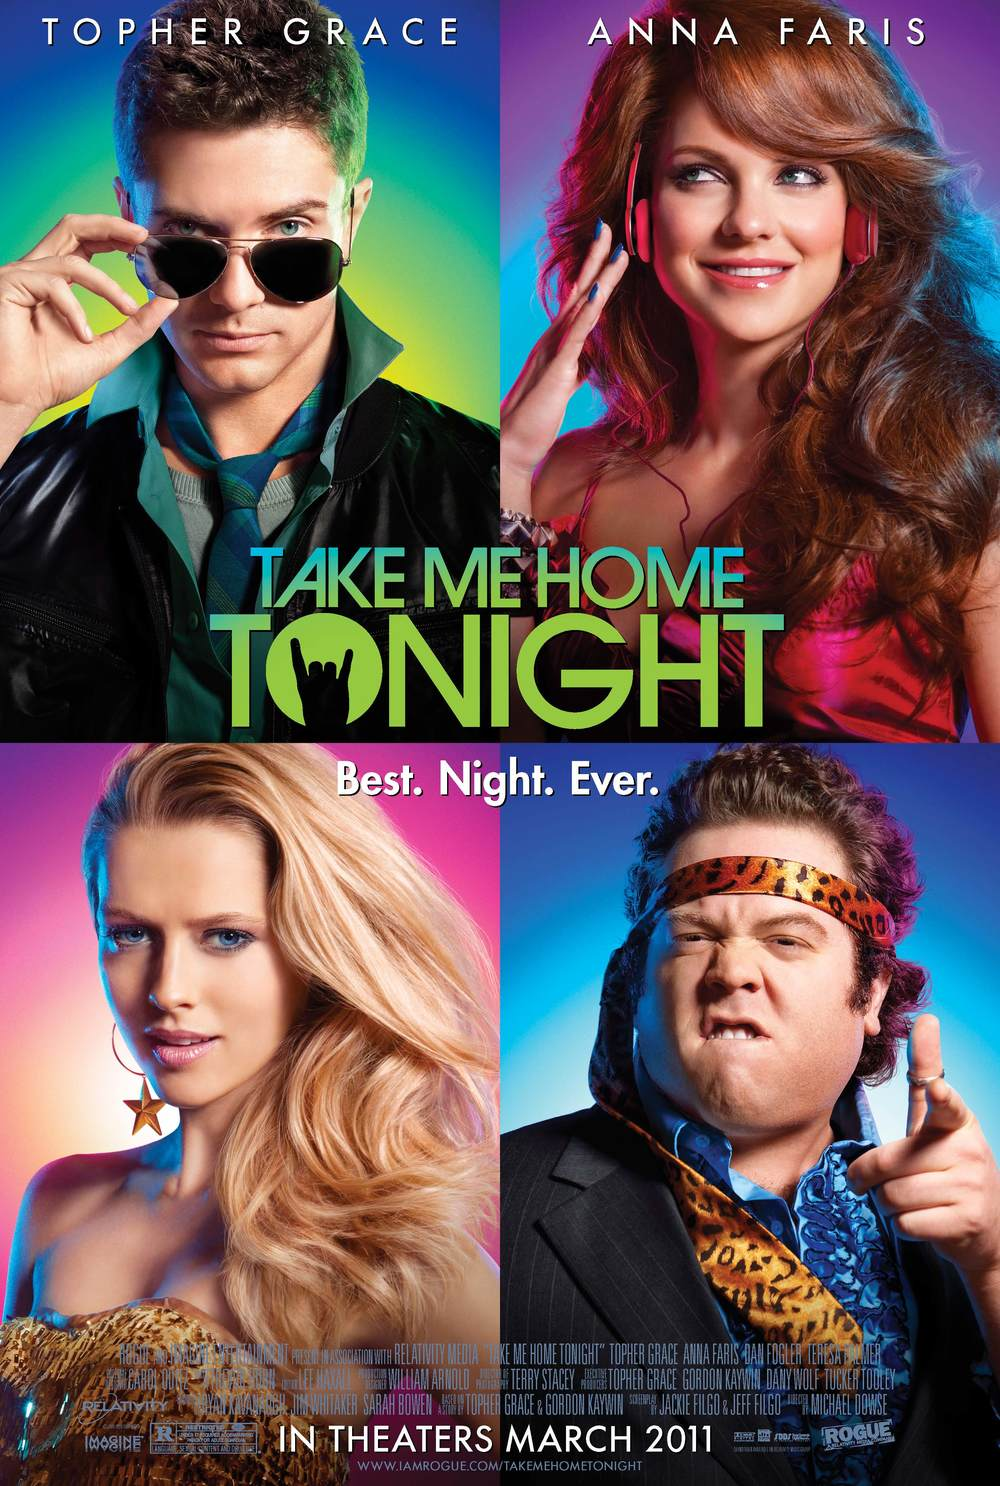 Take-Me-Home-Tonight-Movie-Poster-Large-.jpg